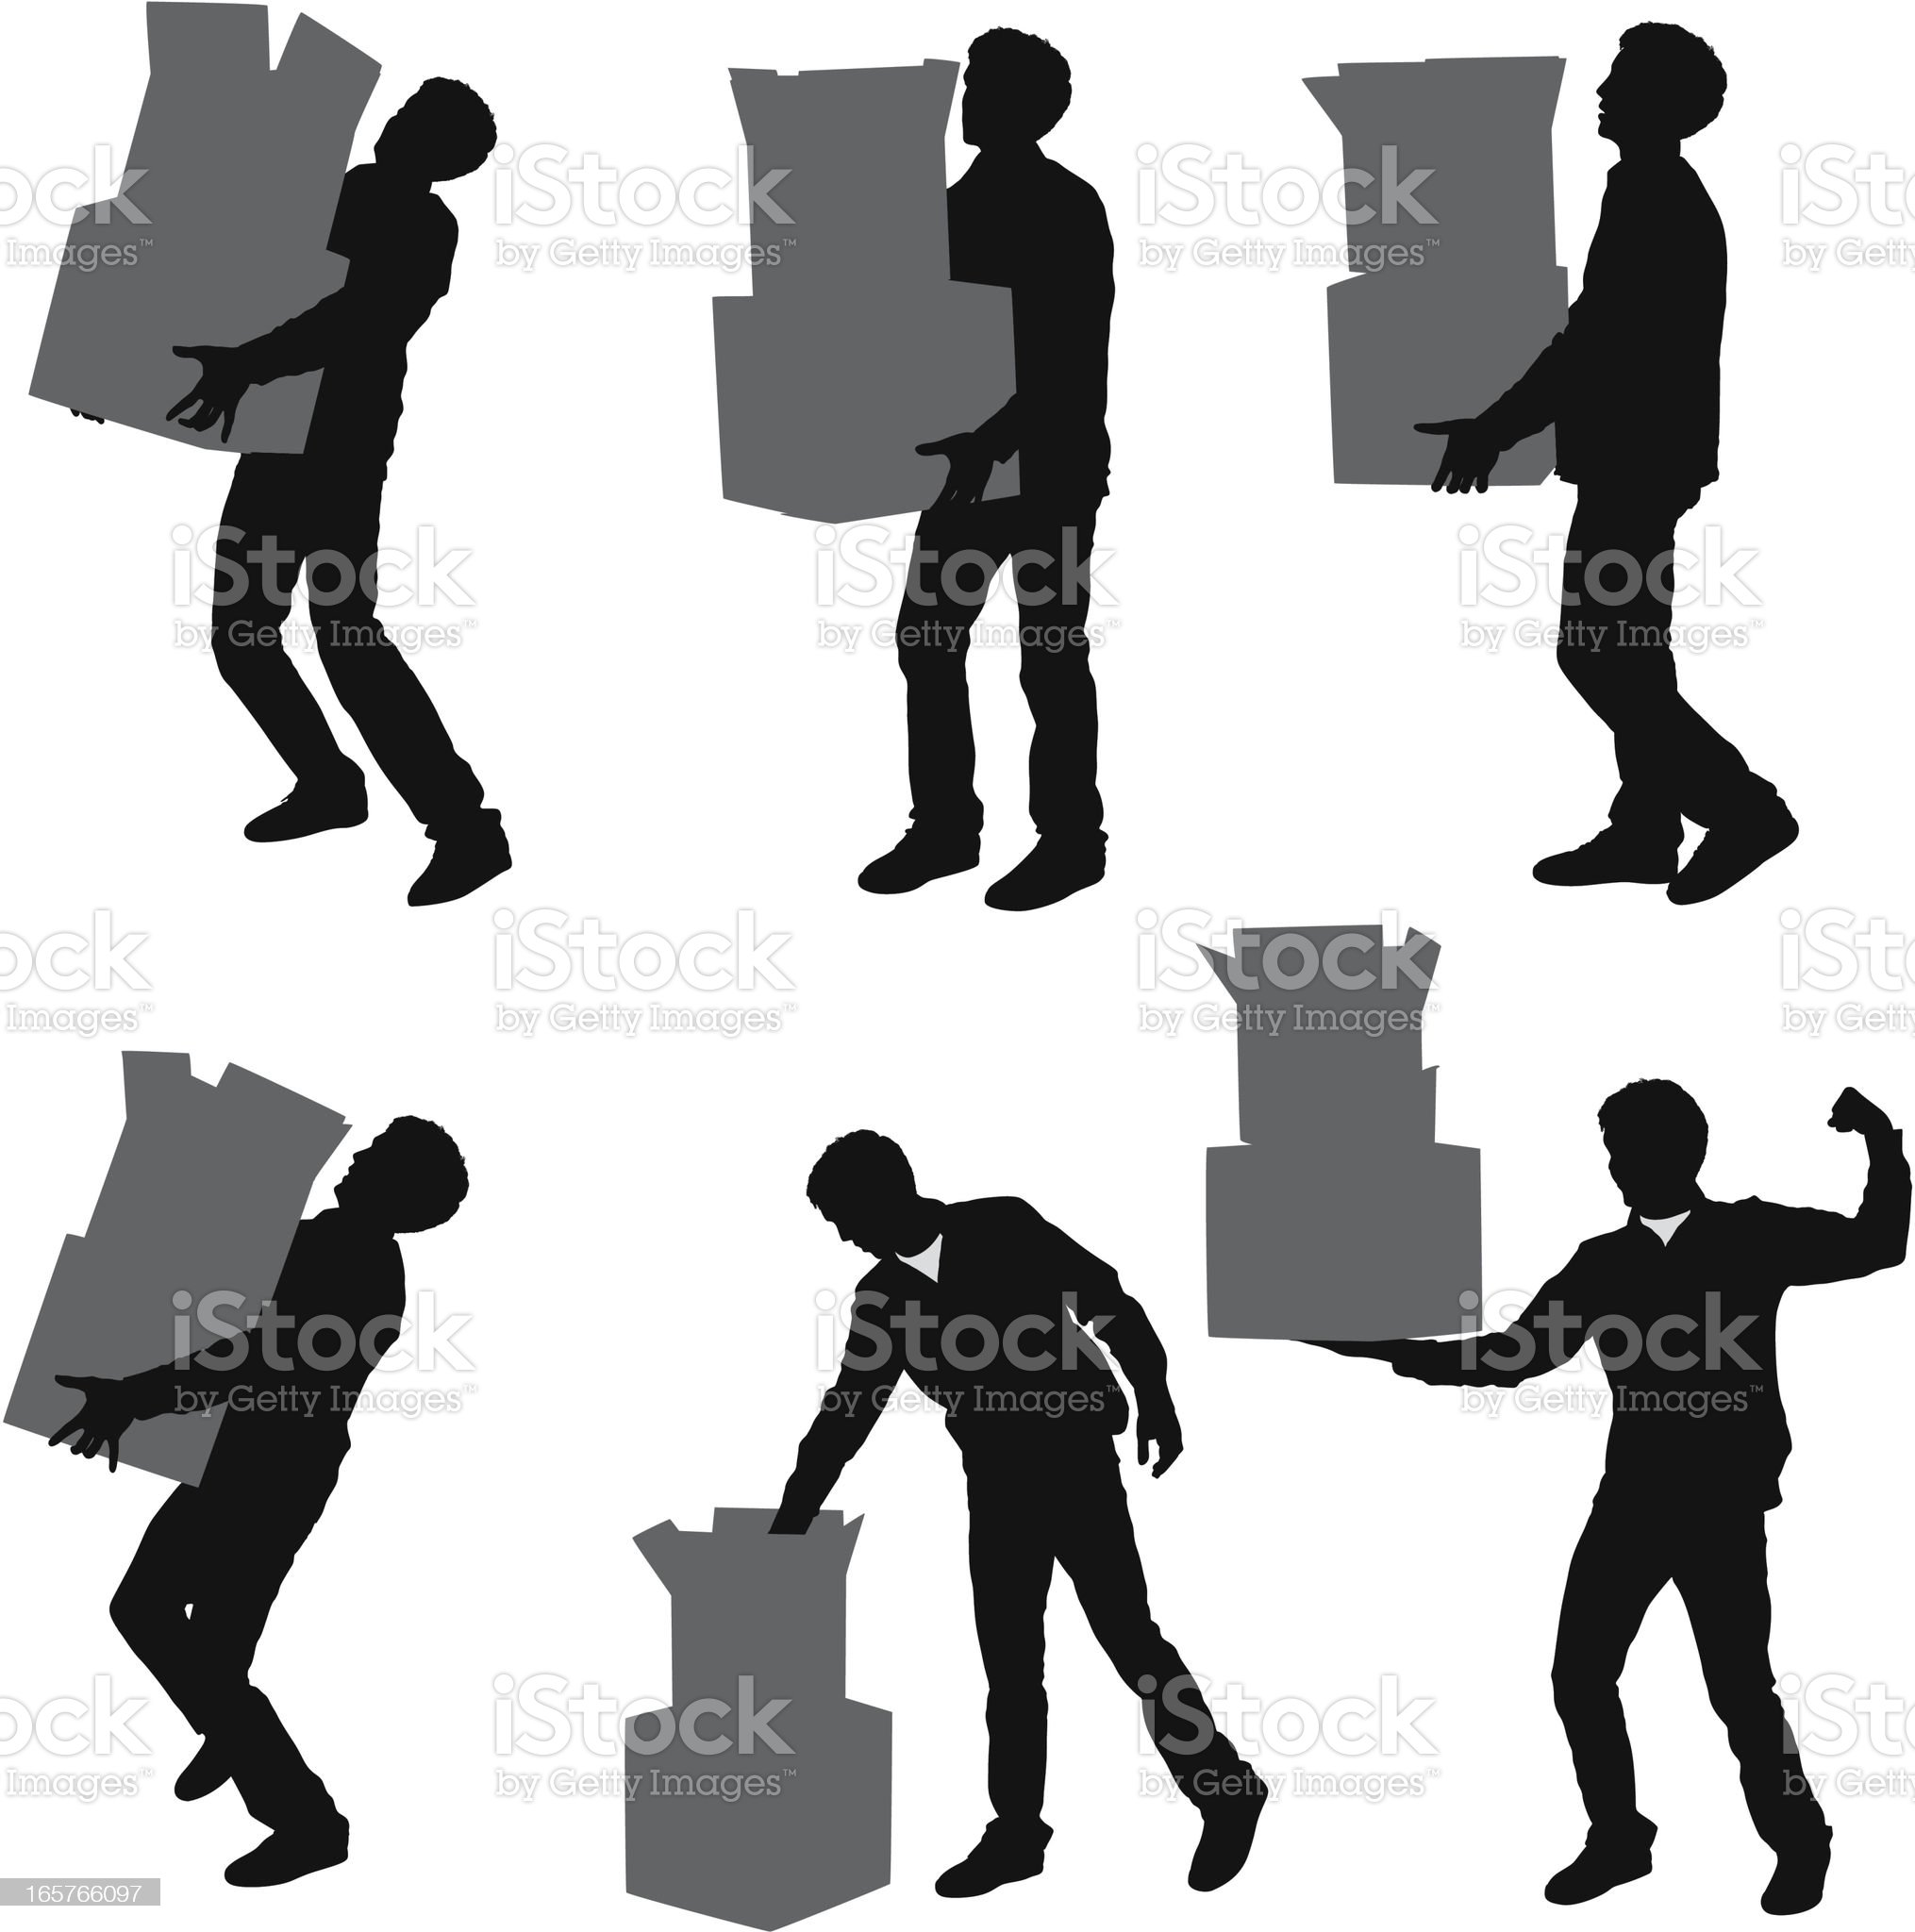 Man carrying stacks of boxes royalty-free stock vector art